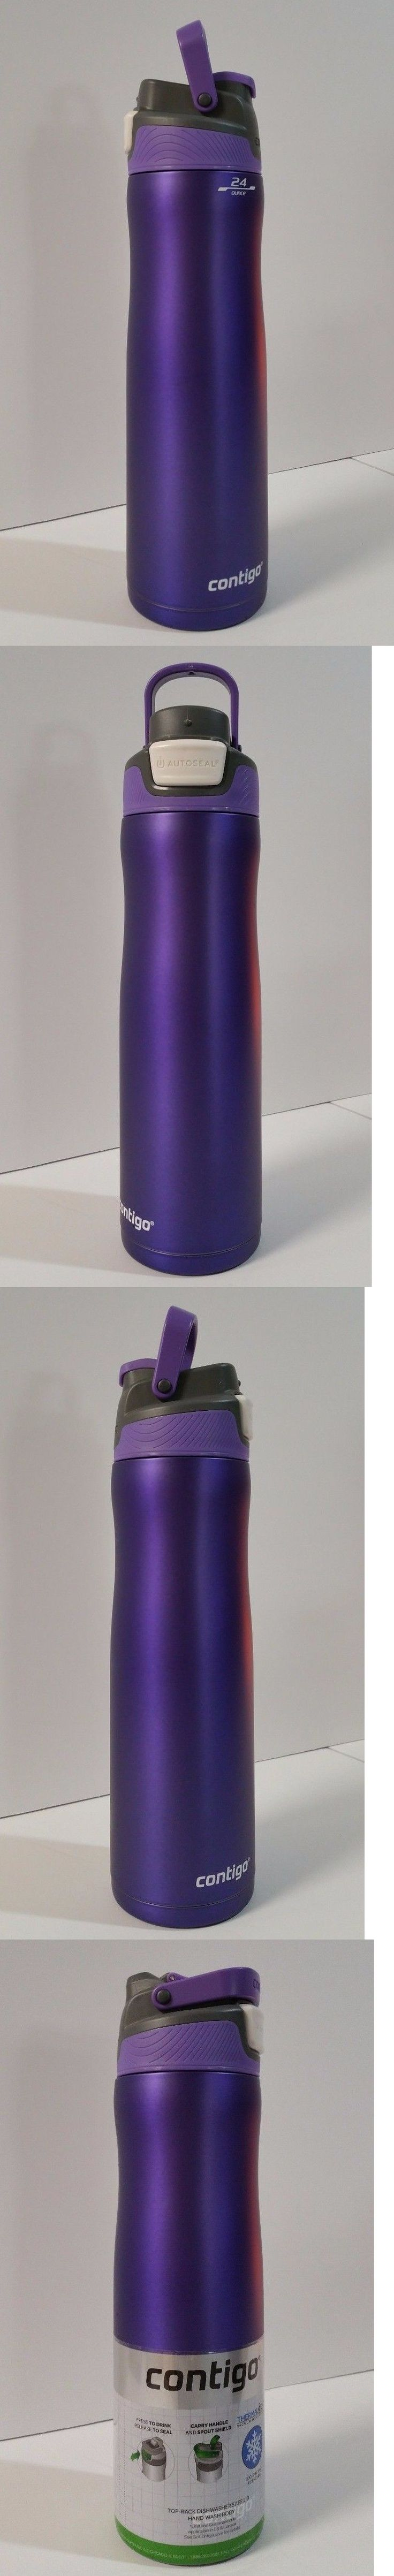 Drink Containers and Thermoses 177006: Contigo Autoseal Chill 24Oz Stainless Water Bottle Cold For 28 Hrs Grapevine -> BUY IT NOW ONLY: $32.5 on eBay!